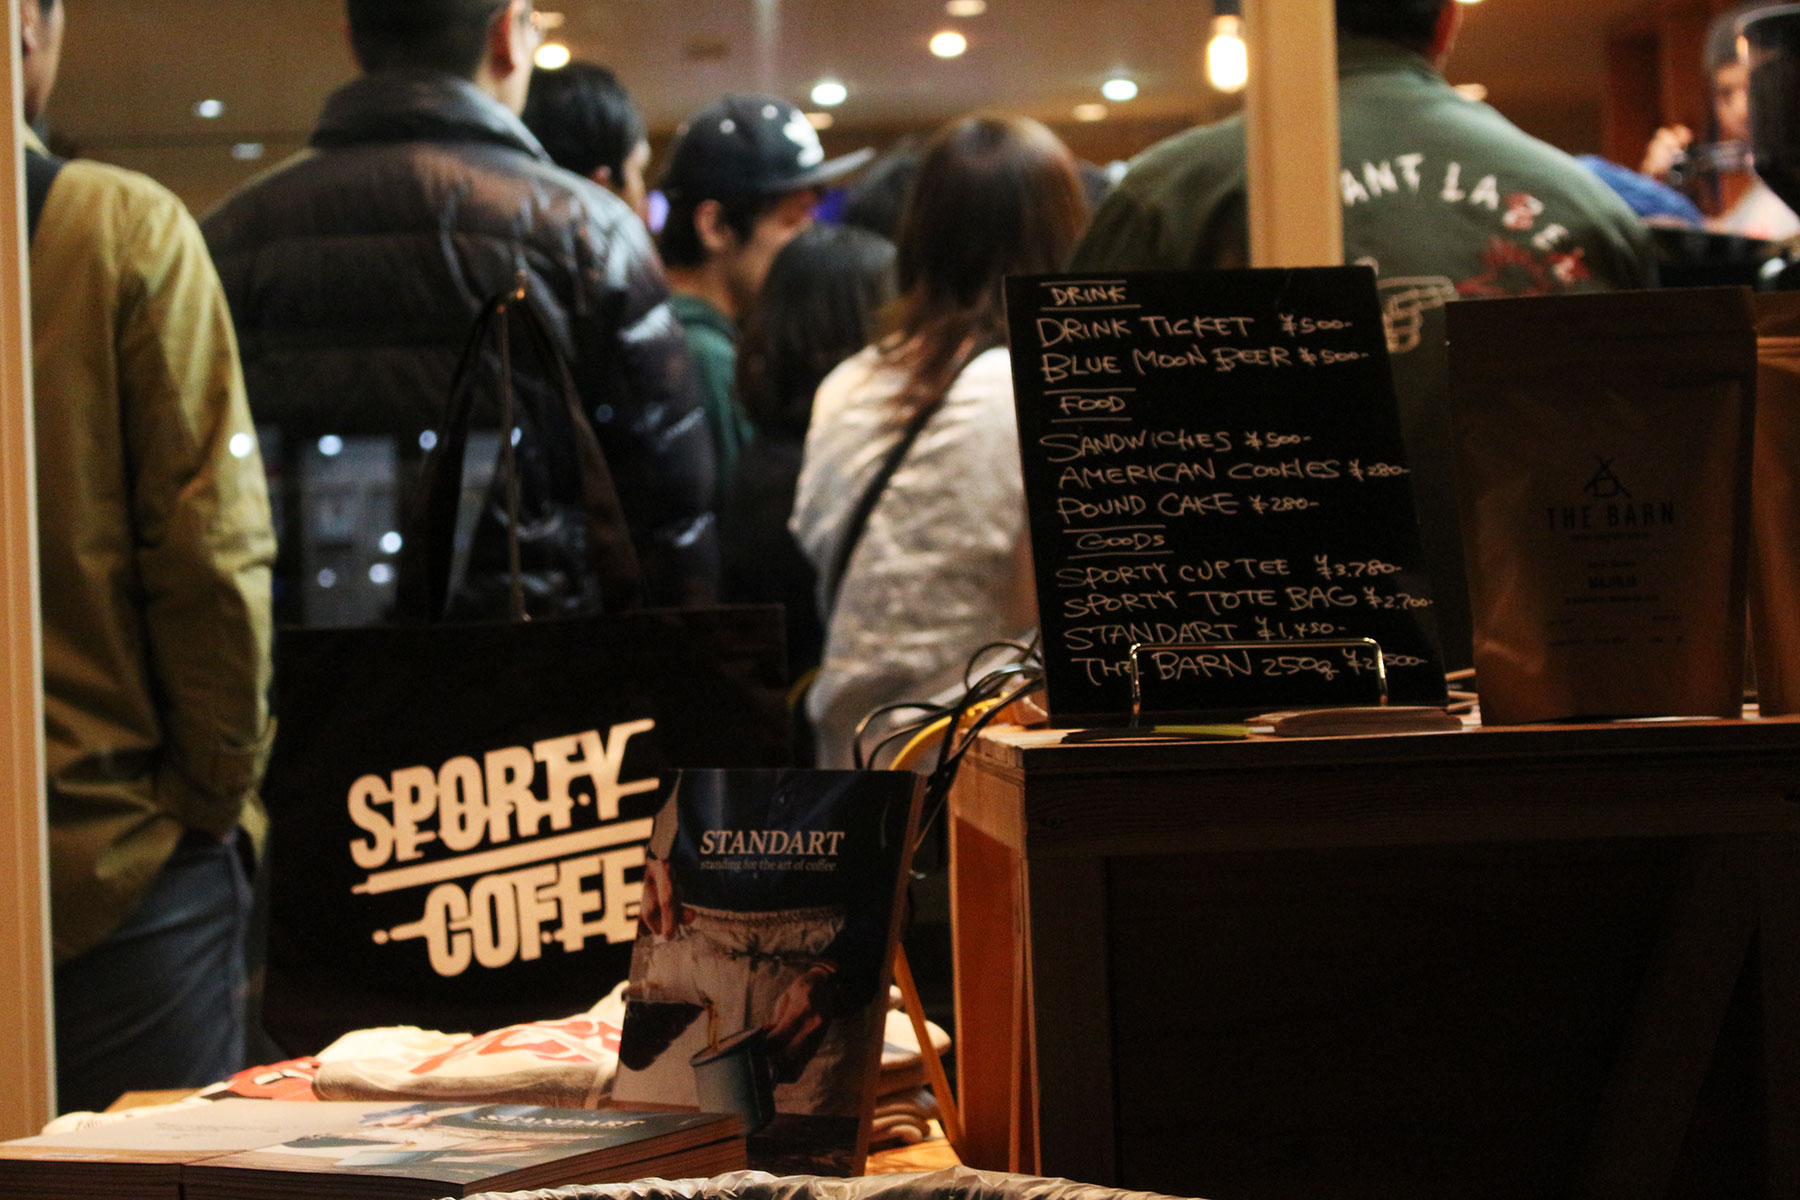 SPORTY CUP Vol.2 in SPORTY COFFEE